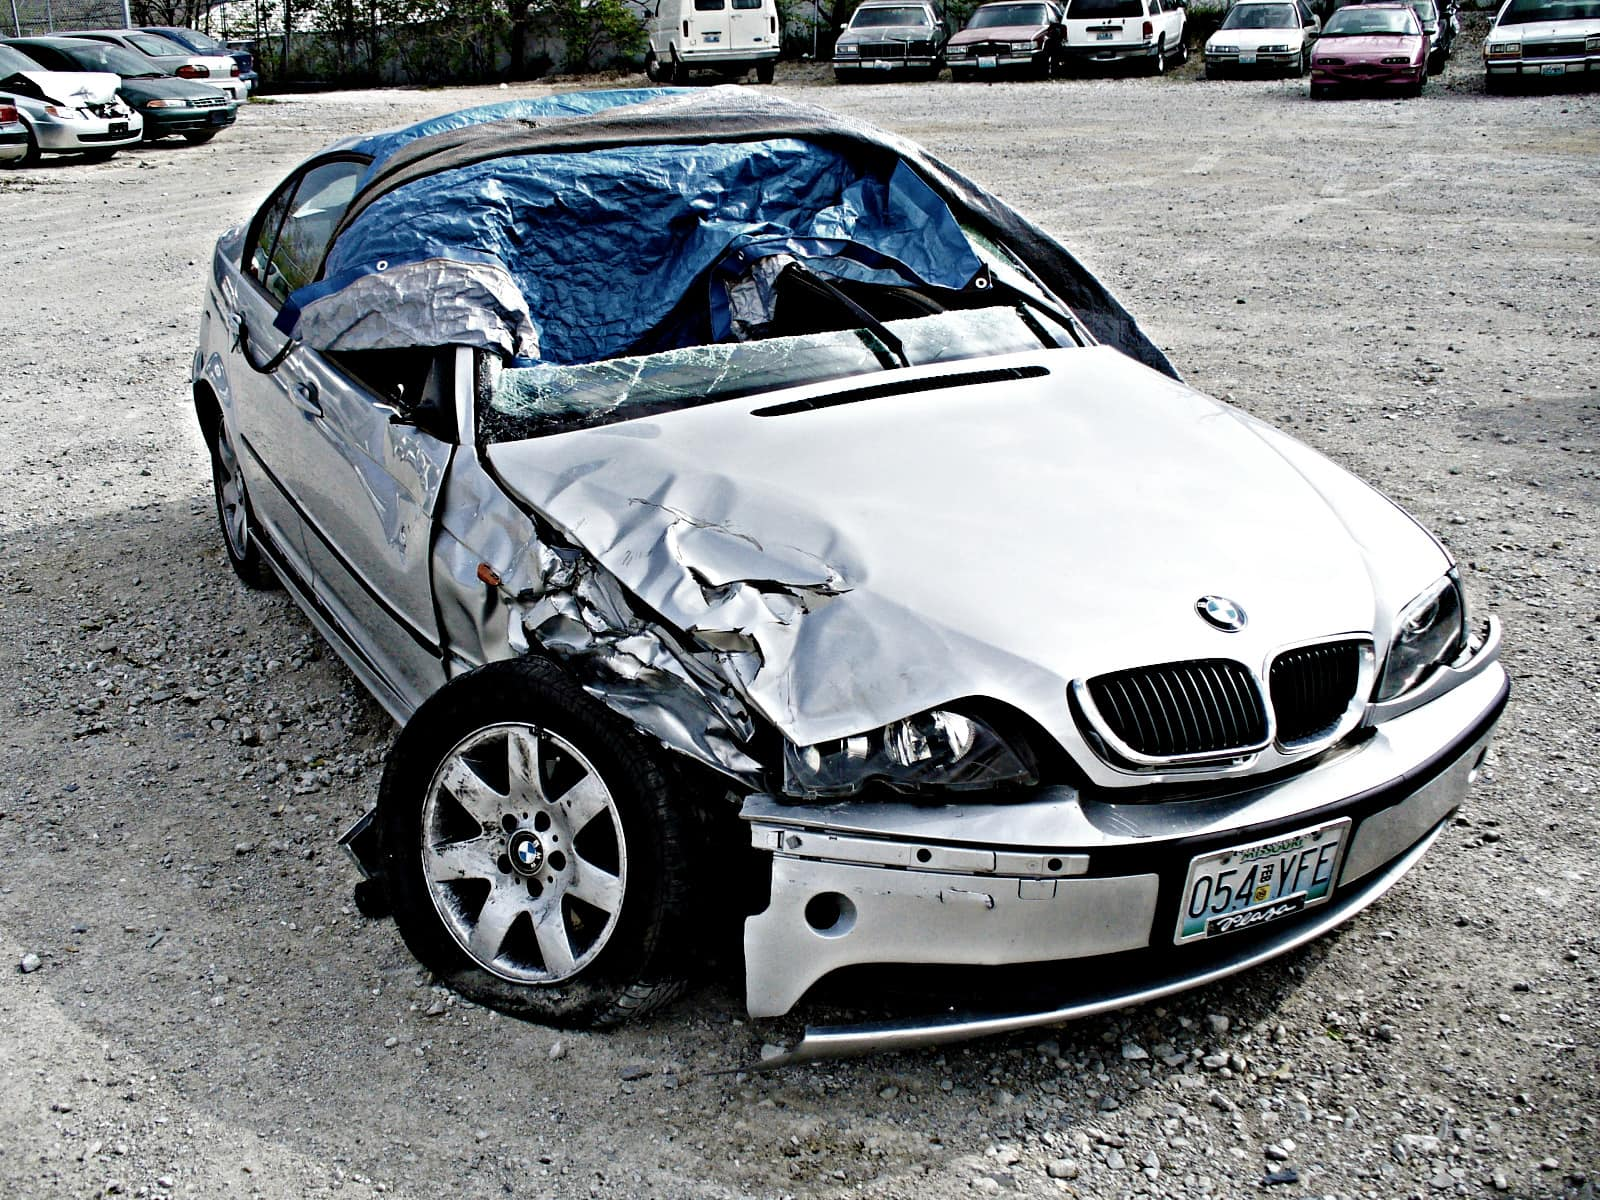 A car accident shifts my perspective - Pretty Extraordinary